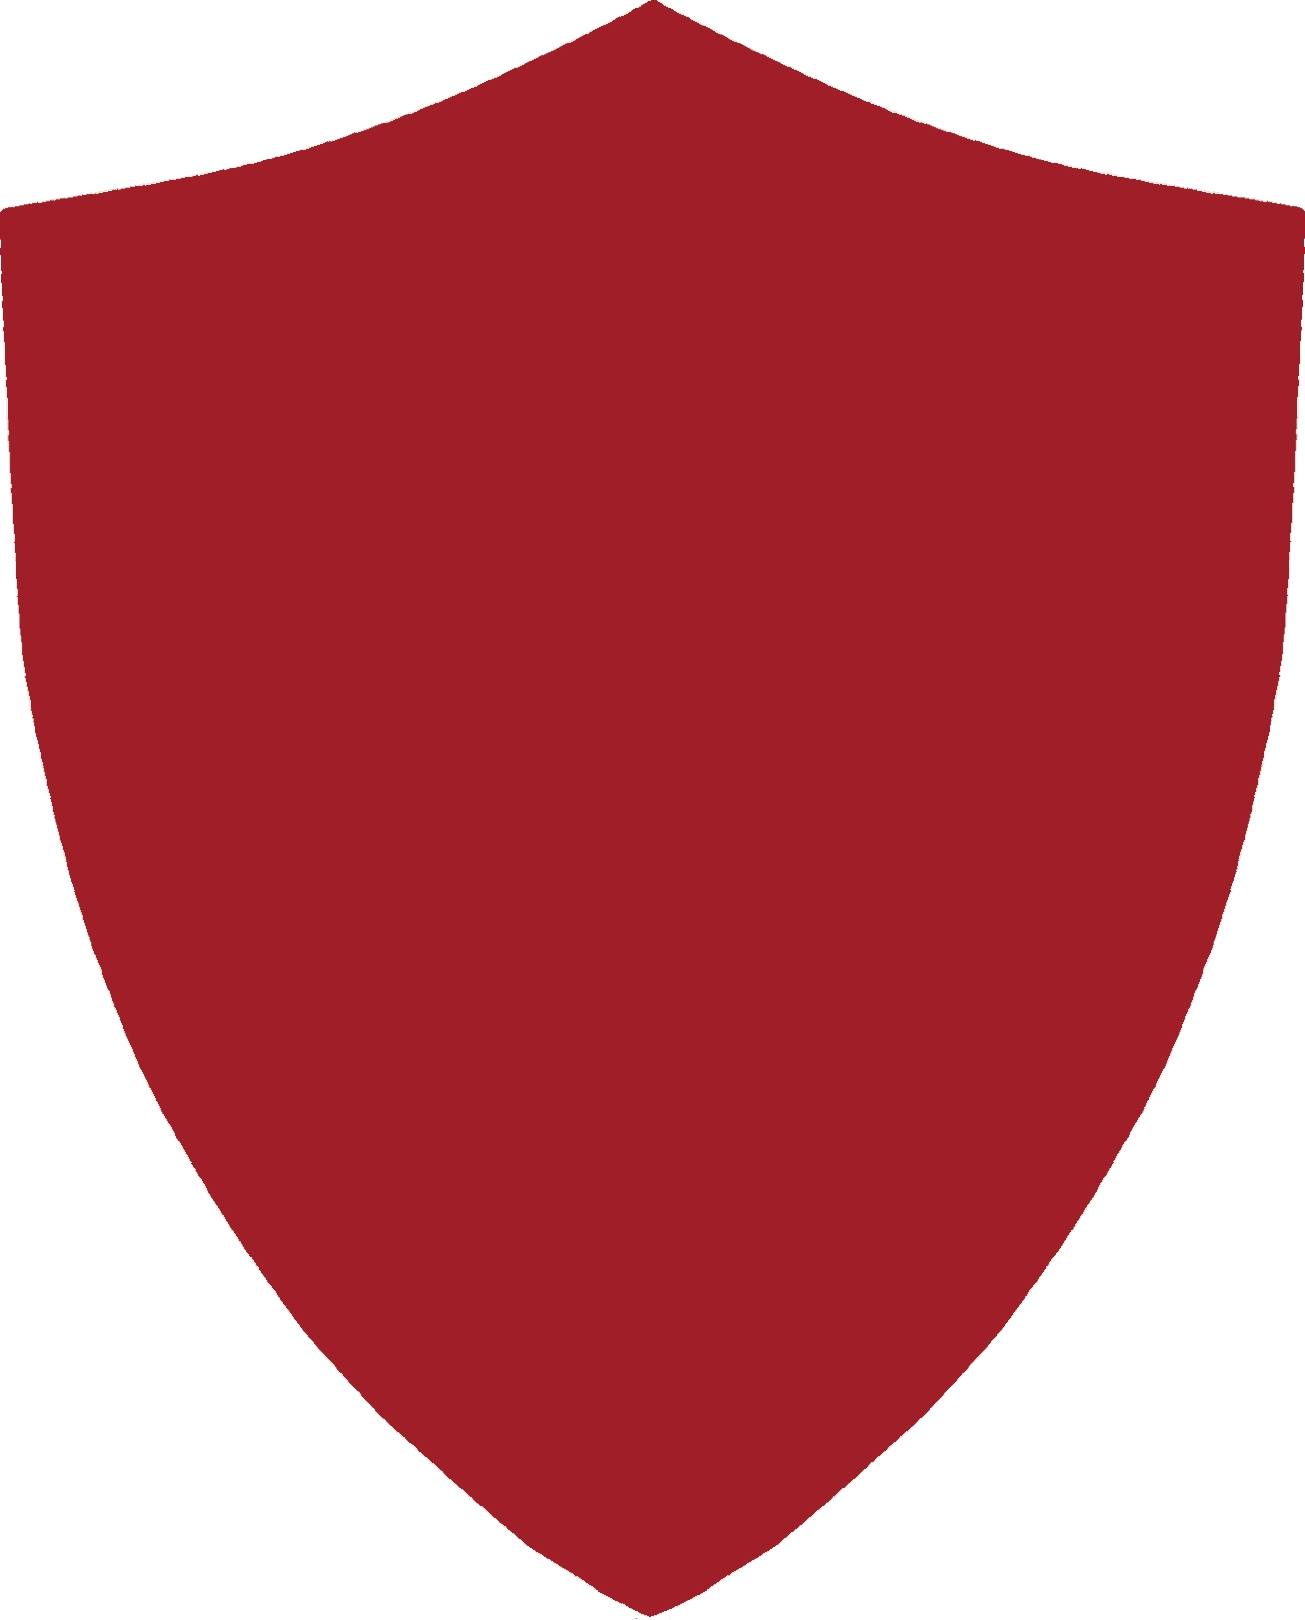 Shield Inset Mirror Red.